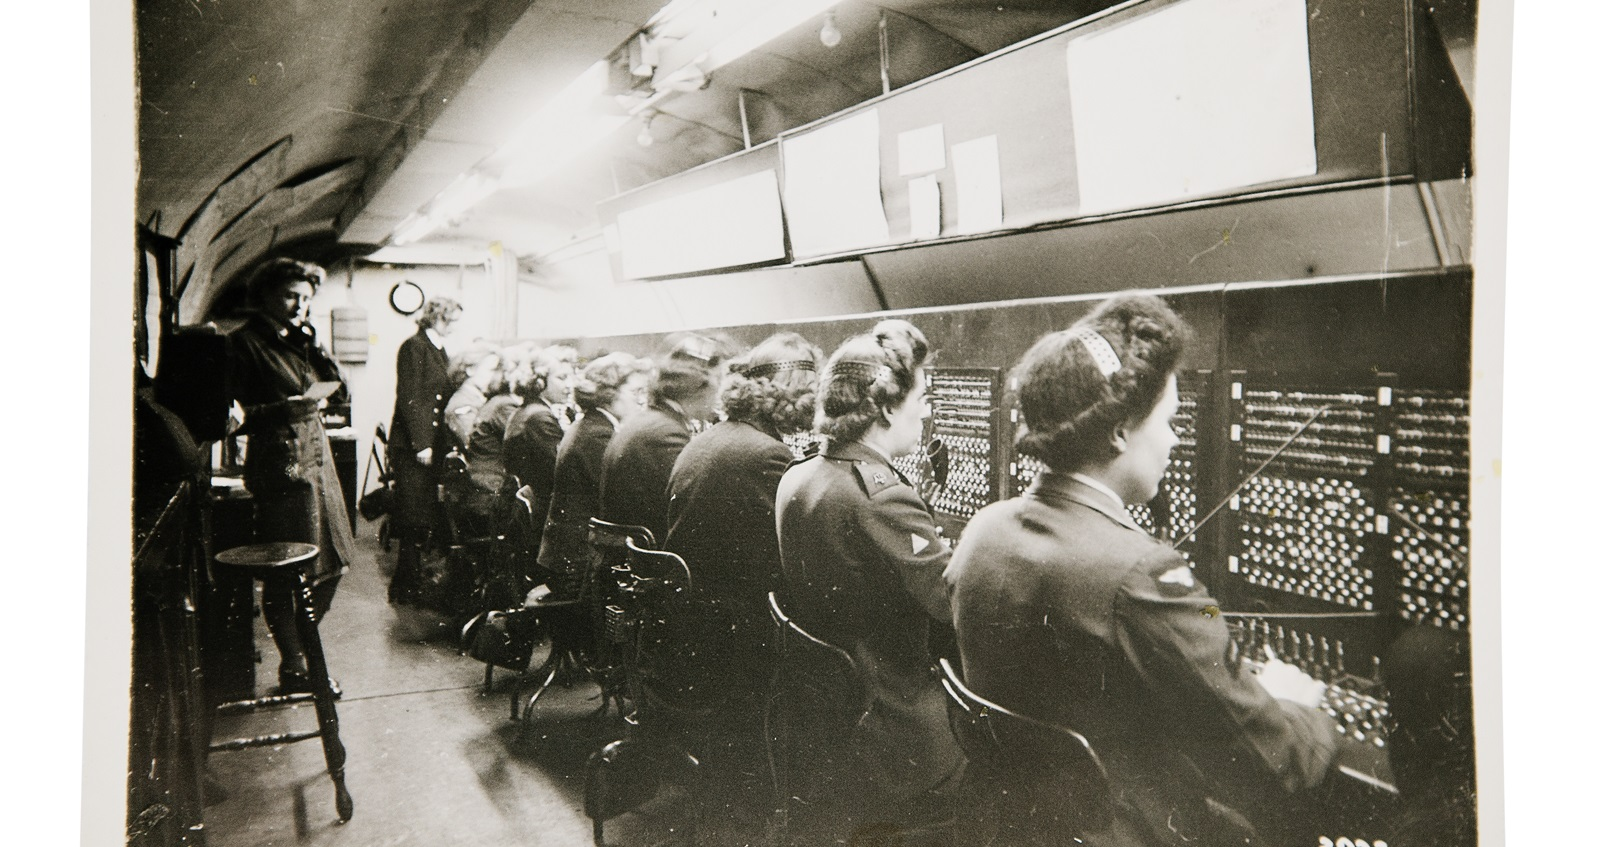 The main switchboard underground in the tunnels at Fort Southwick